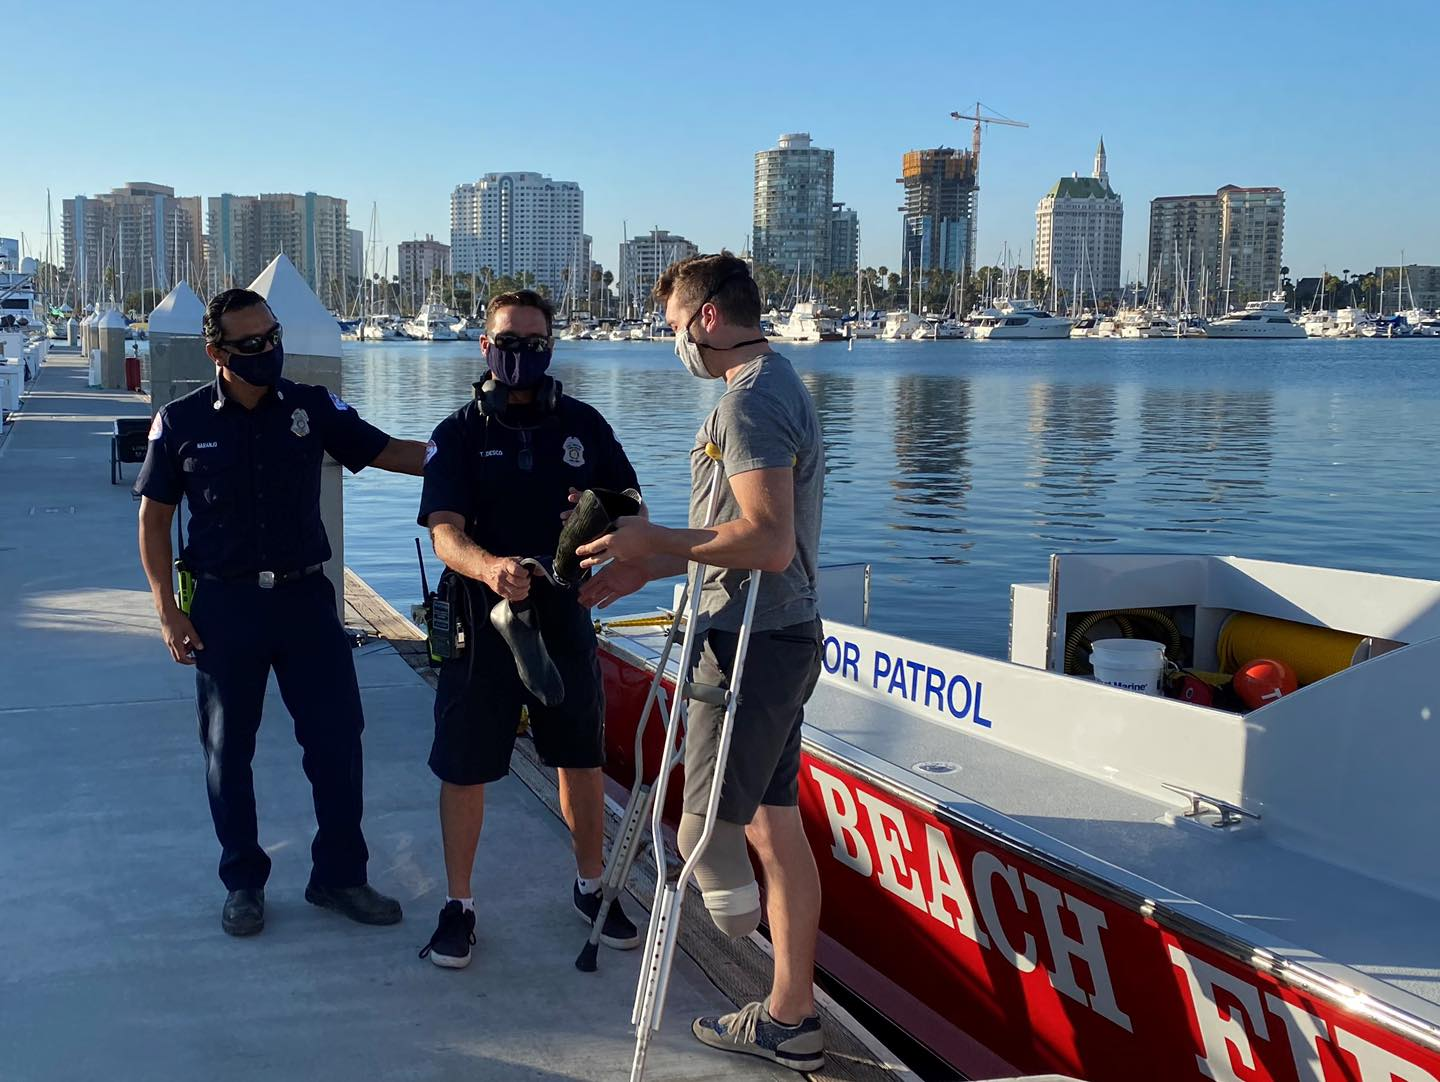 Rescue divers pulled Paralympic hopeful DeWalt Mix's prosthetic leg from the bottom of a Long Beach marina on July 28, 2020. (Long Beach Fire Department)